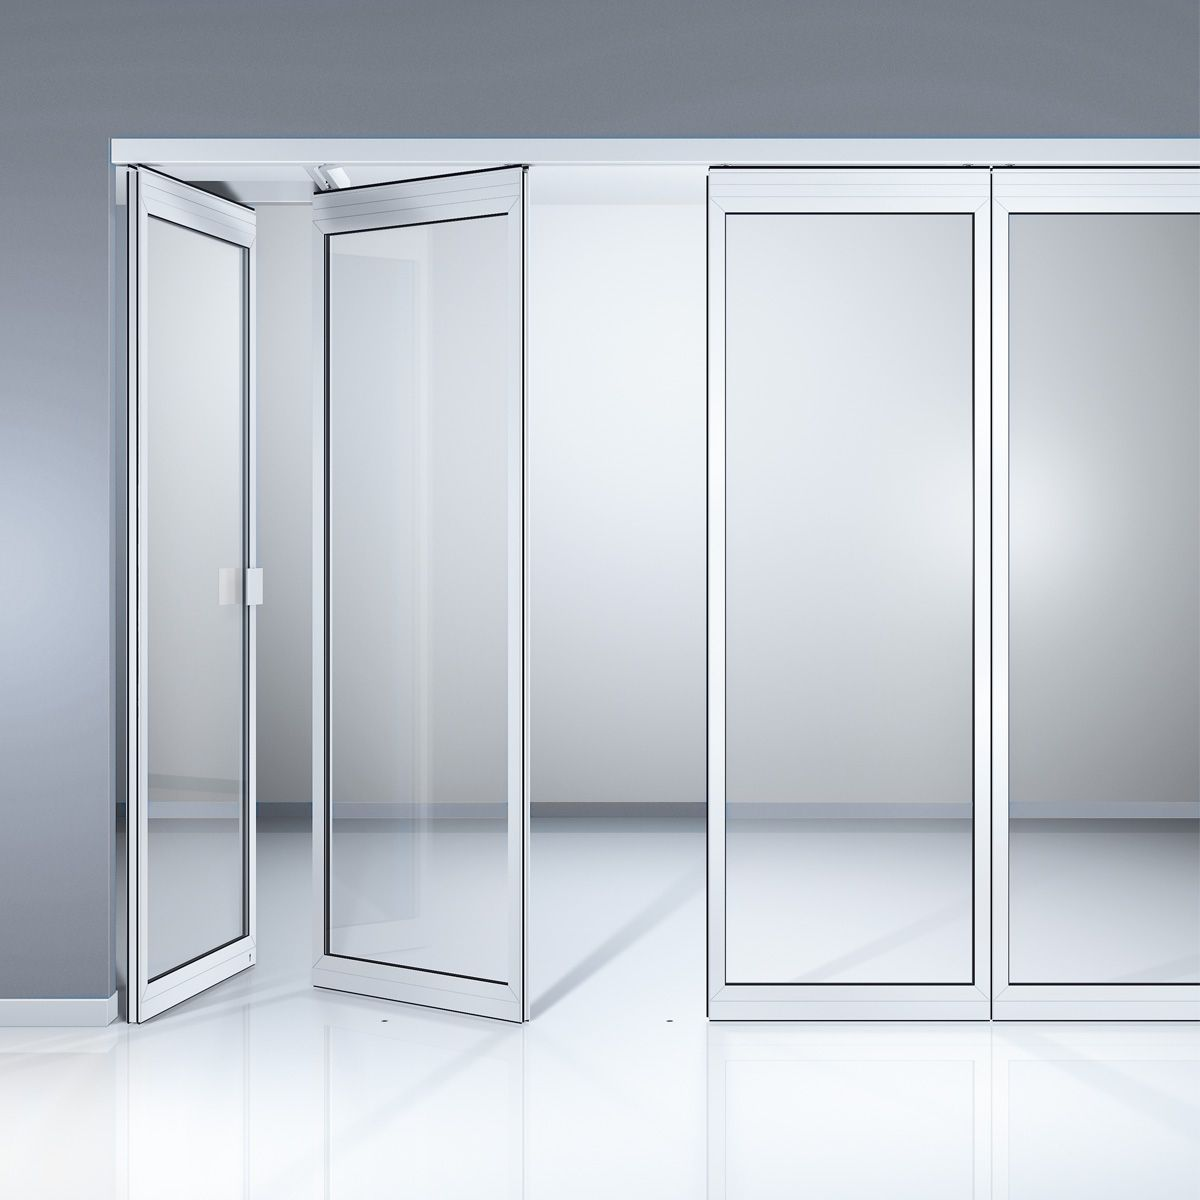 Partition walls round glass sliding door draw google for Sliding door partition wall